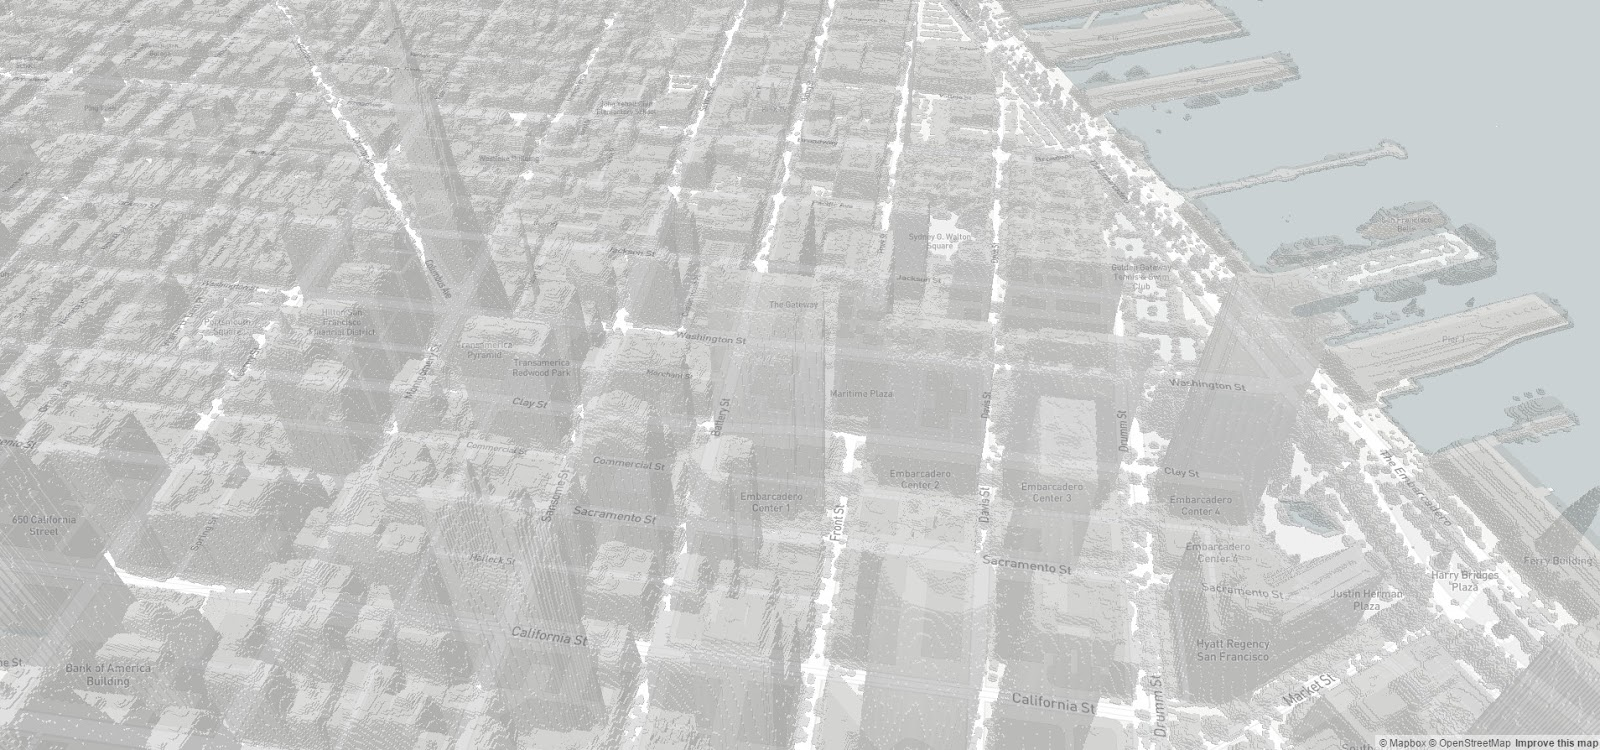 San Francisco LIDAR data